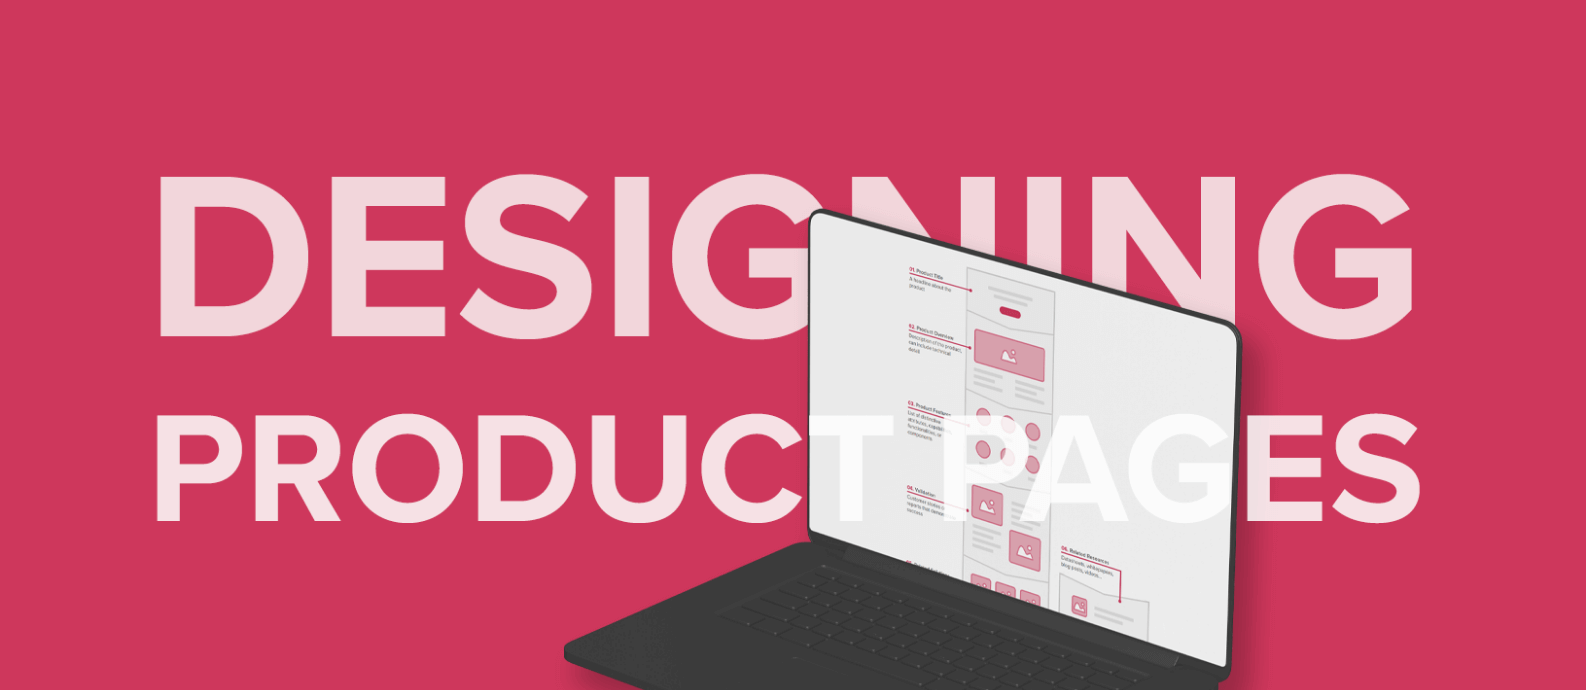 designing-product-pages